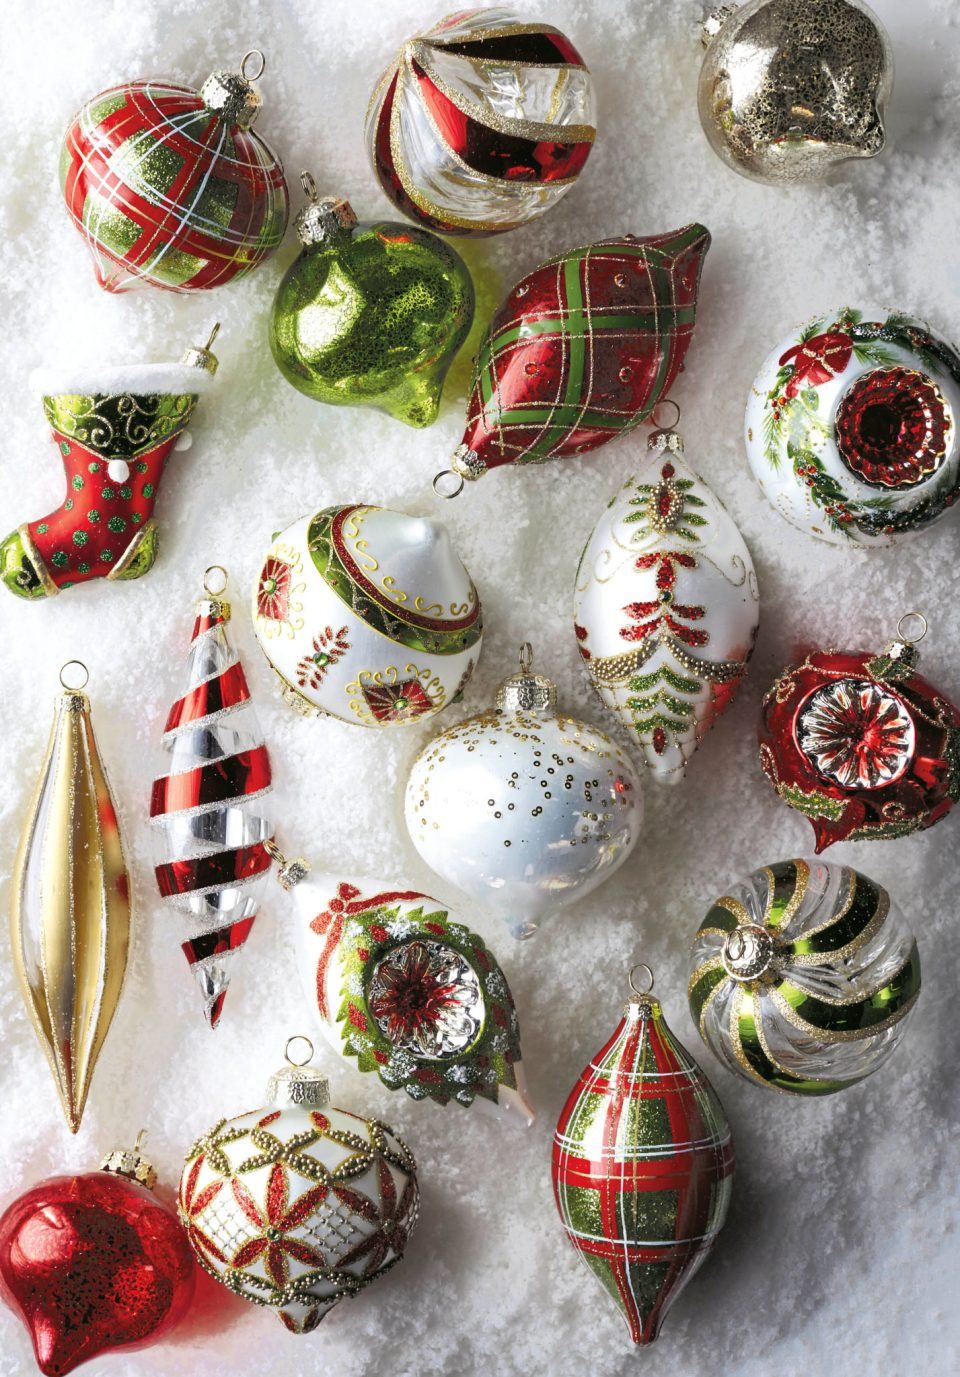 158543_067-960x1377 Holiday Ornaments We Love and How to Store Your Holiday Decor